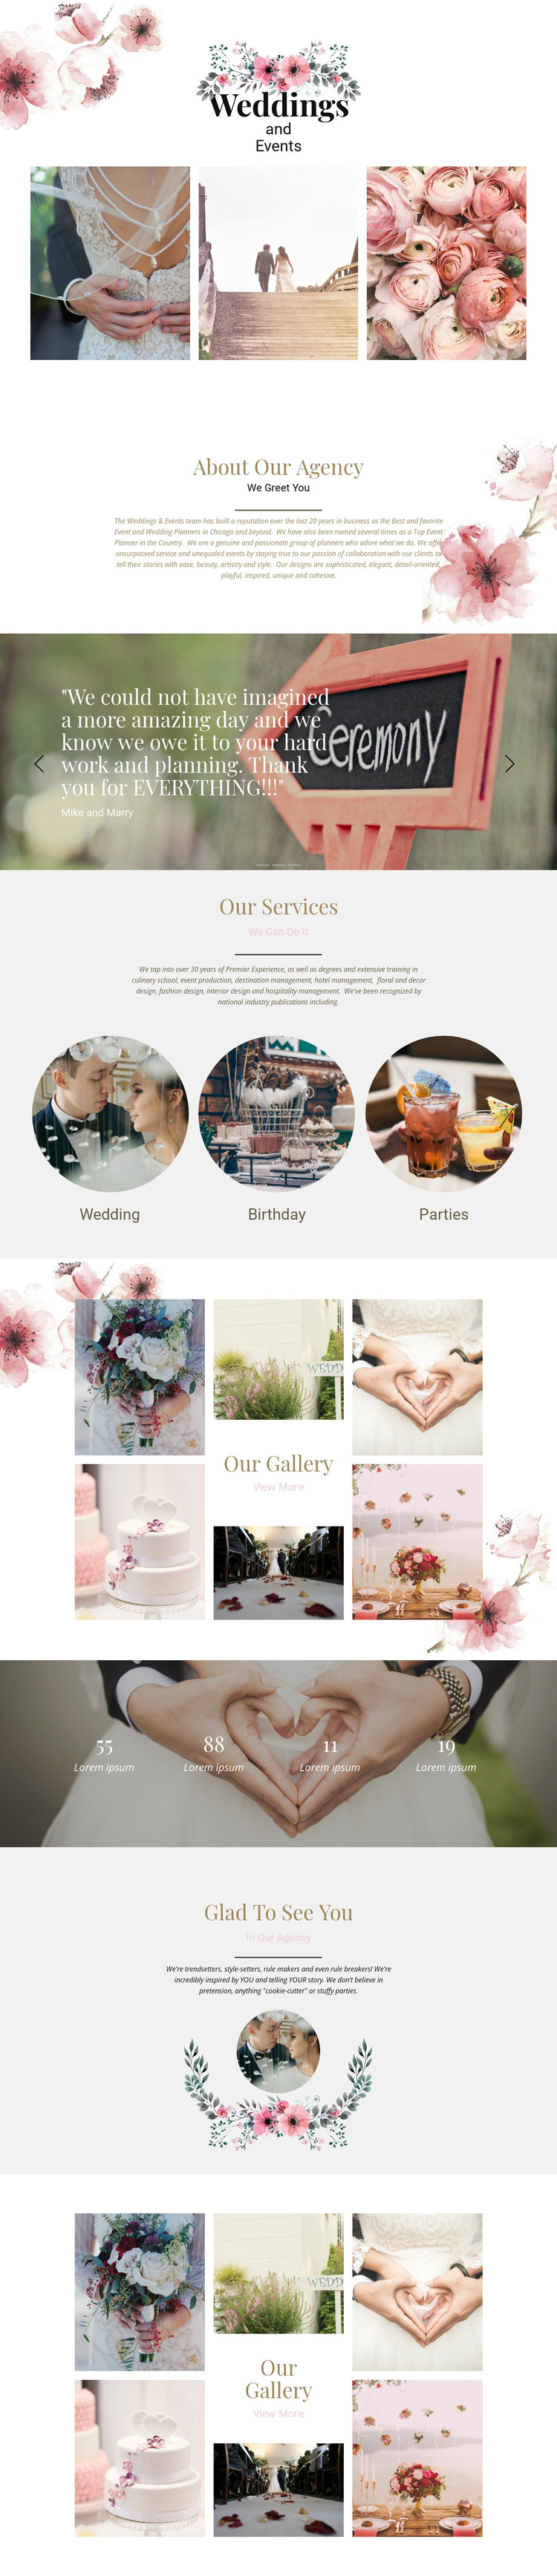 Moments of wedding HTML Template